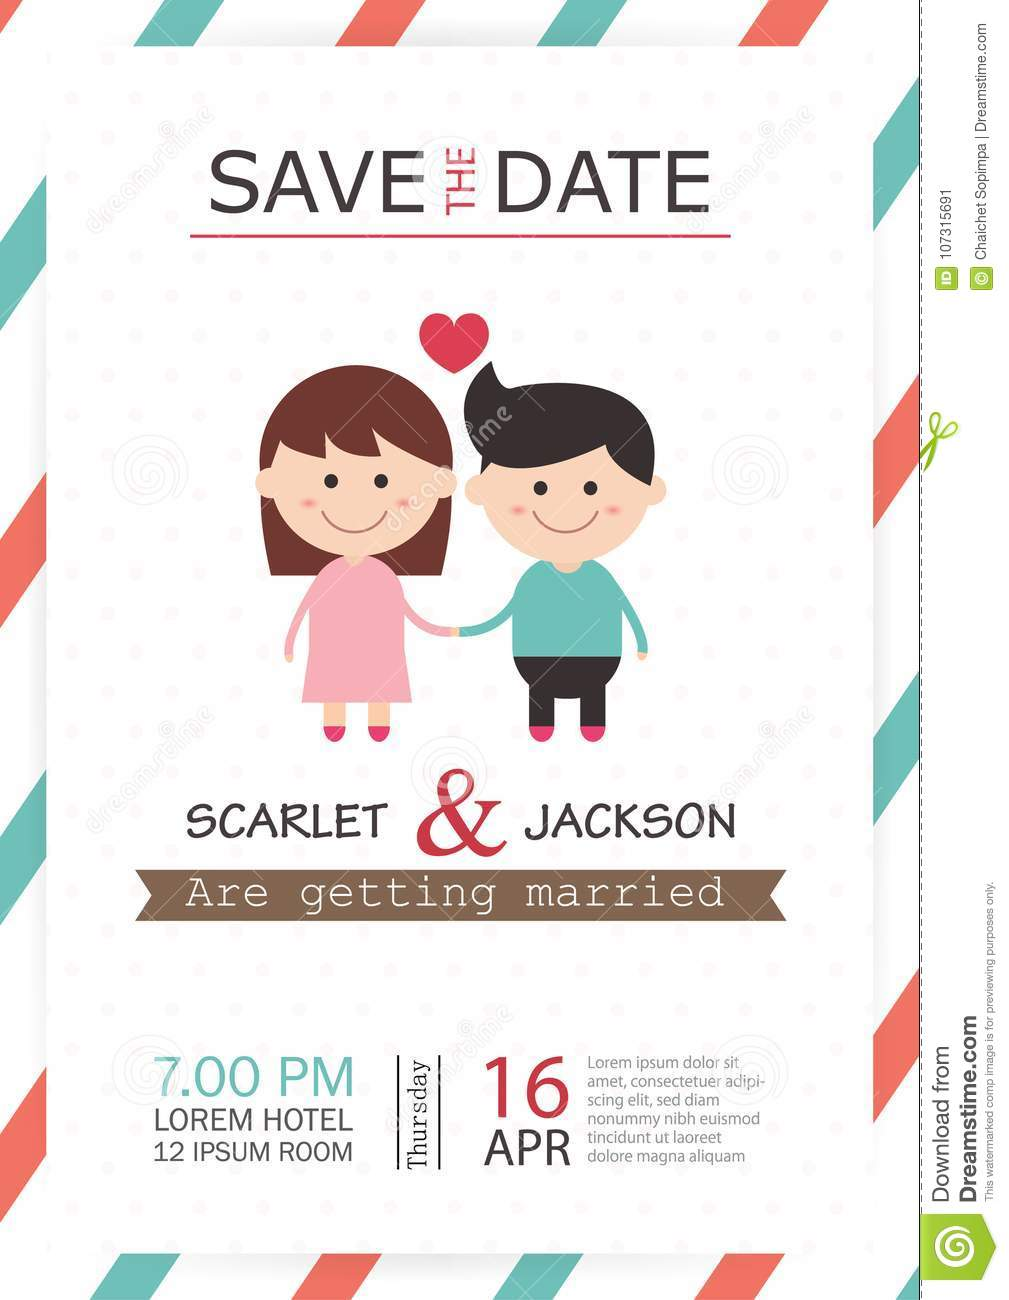 Wedding invitation card template vector illustration wedding download wedding invitation card template vector illustration wedding invitation card editable with background save the stopboris Choice Image